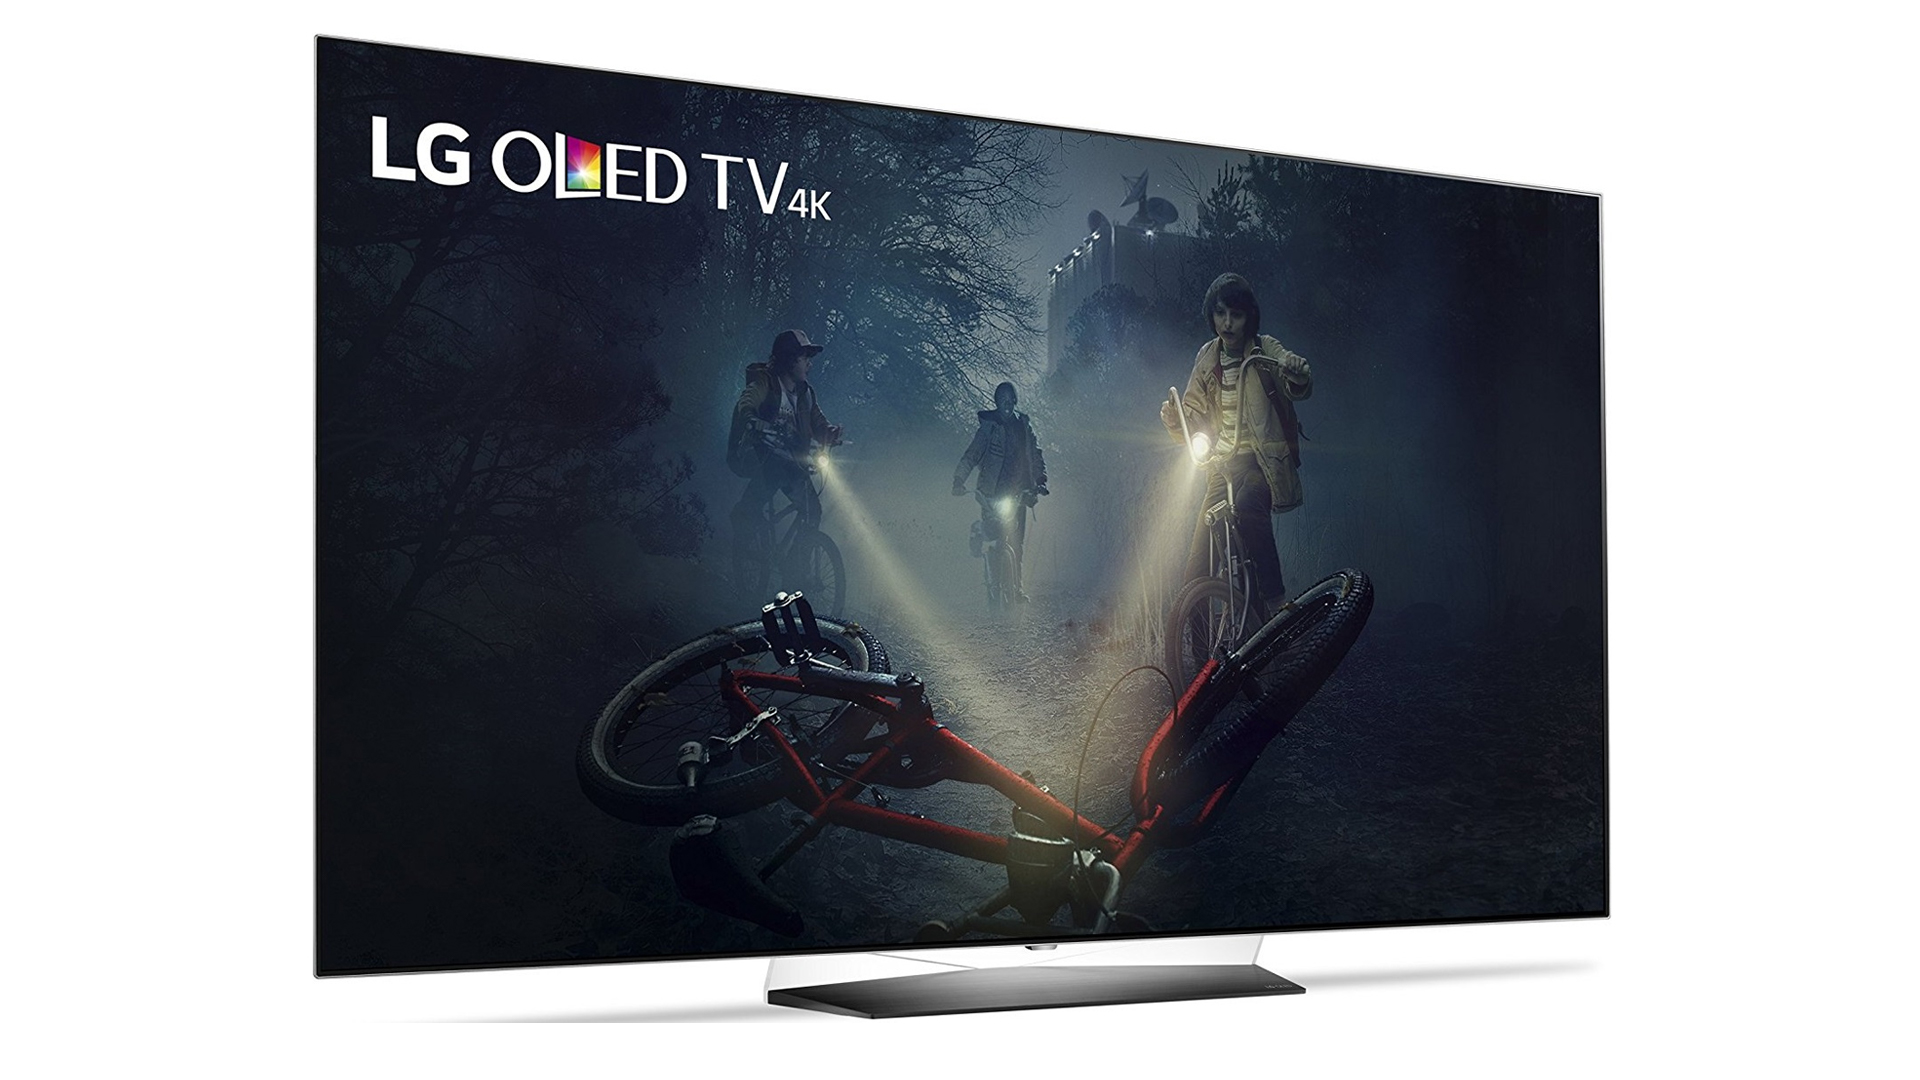 lg 39 s 55 inch oled 4k tv is down to 1 500 this week at newegg vg247. Black Bedroom Furniture Sets. Home Design Ideas